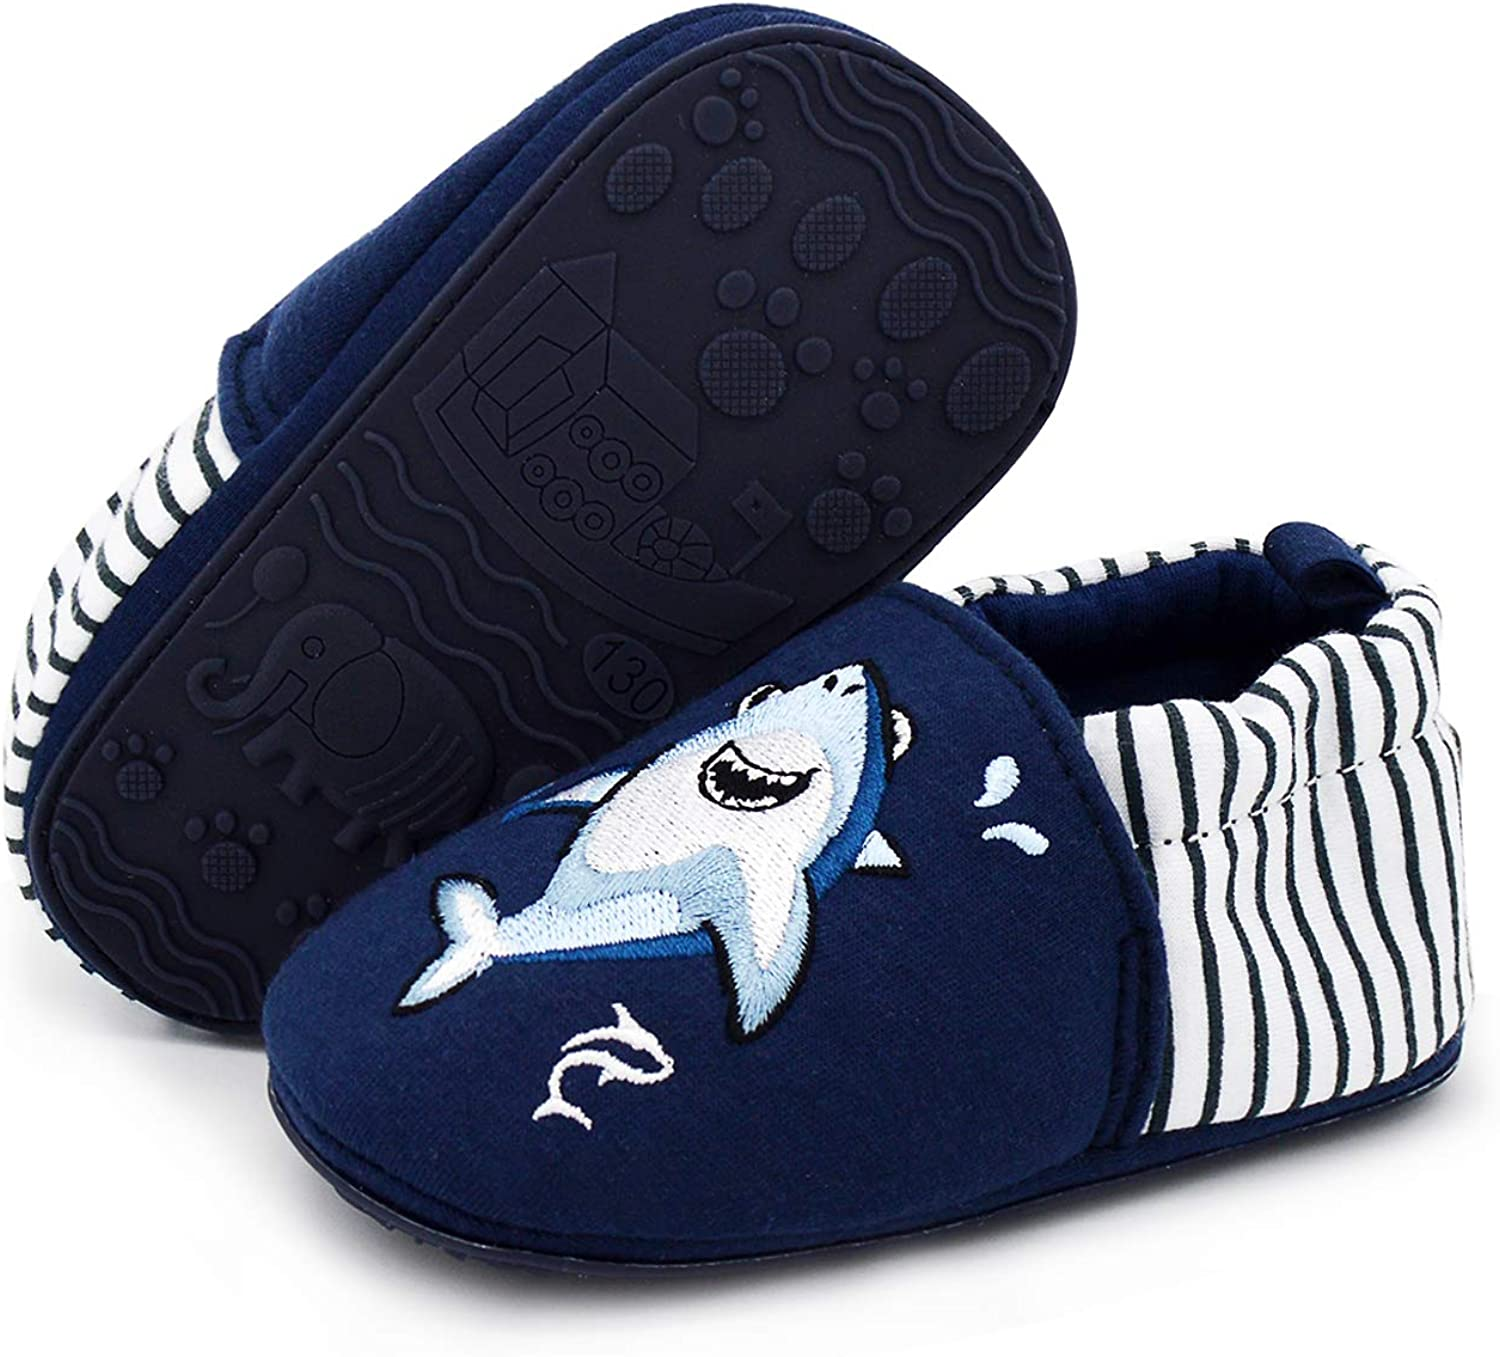 COSANKIM Infant Baby Boys Girls Slipper Soft Sole Non Skid Sneaker Moccasins Toddler First Walker Cirb House Shoes